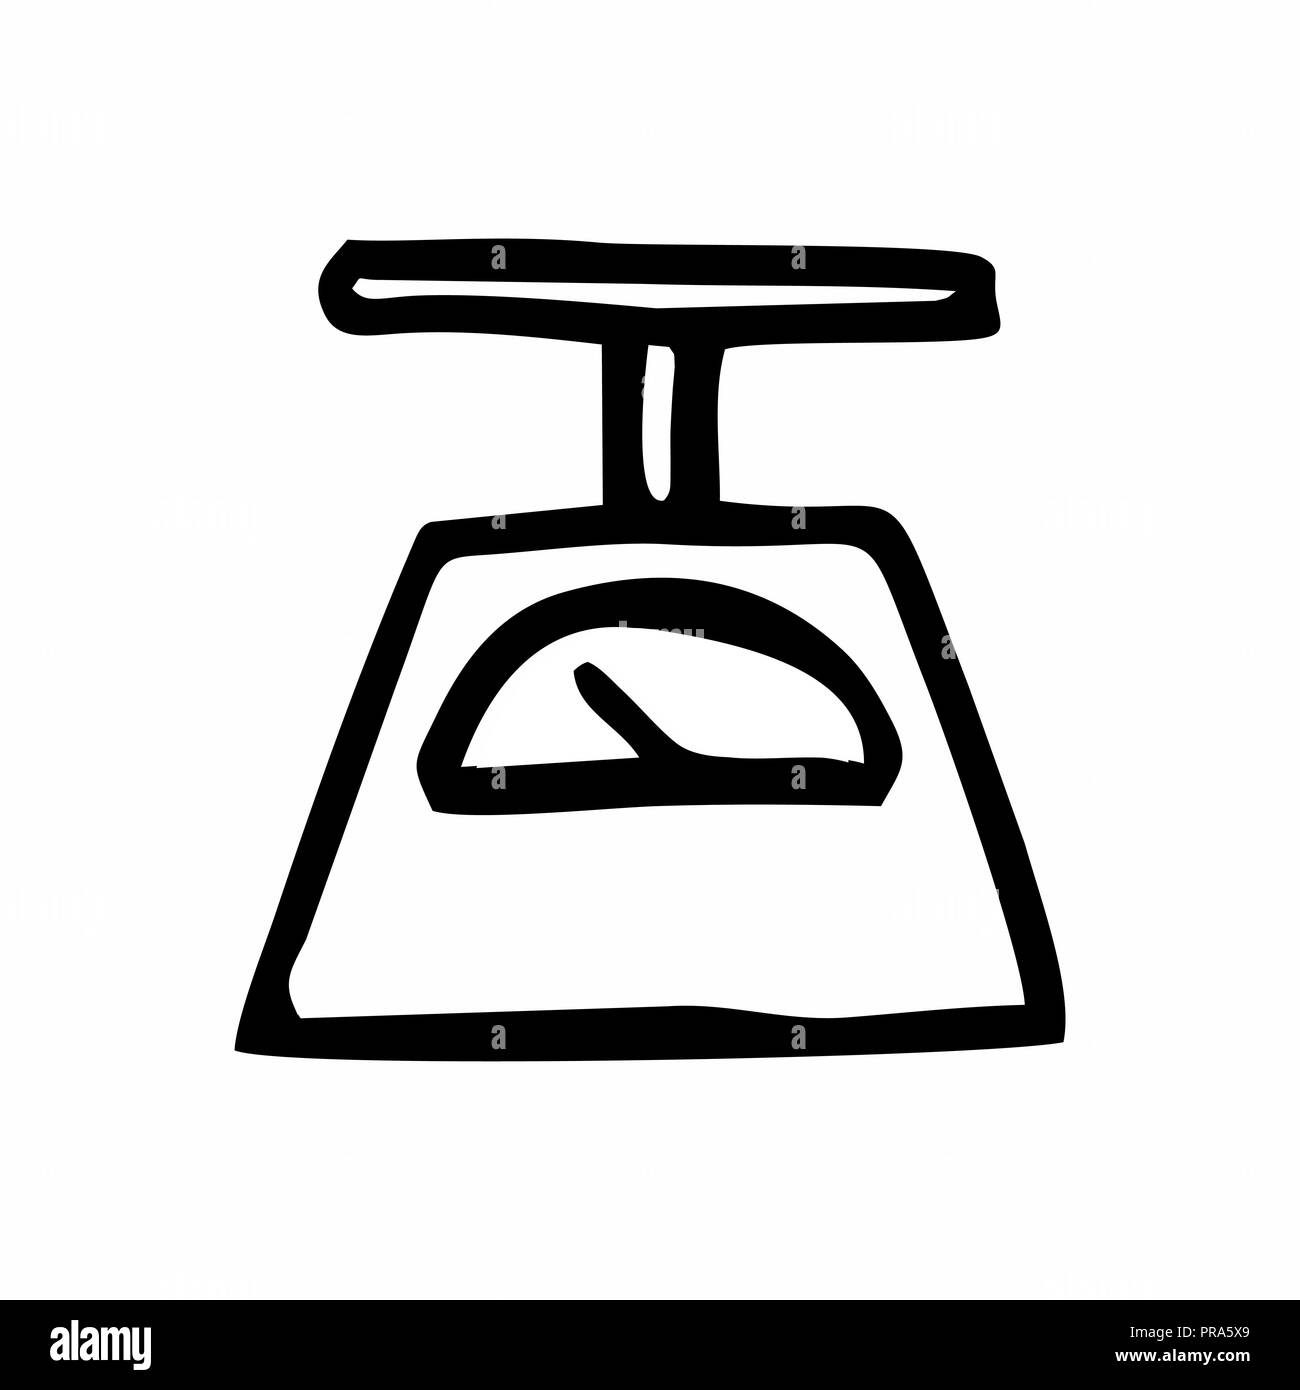 Freehand illustration of a scales. Black and colorful illustrations on white background. - Stock Image